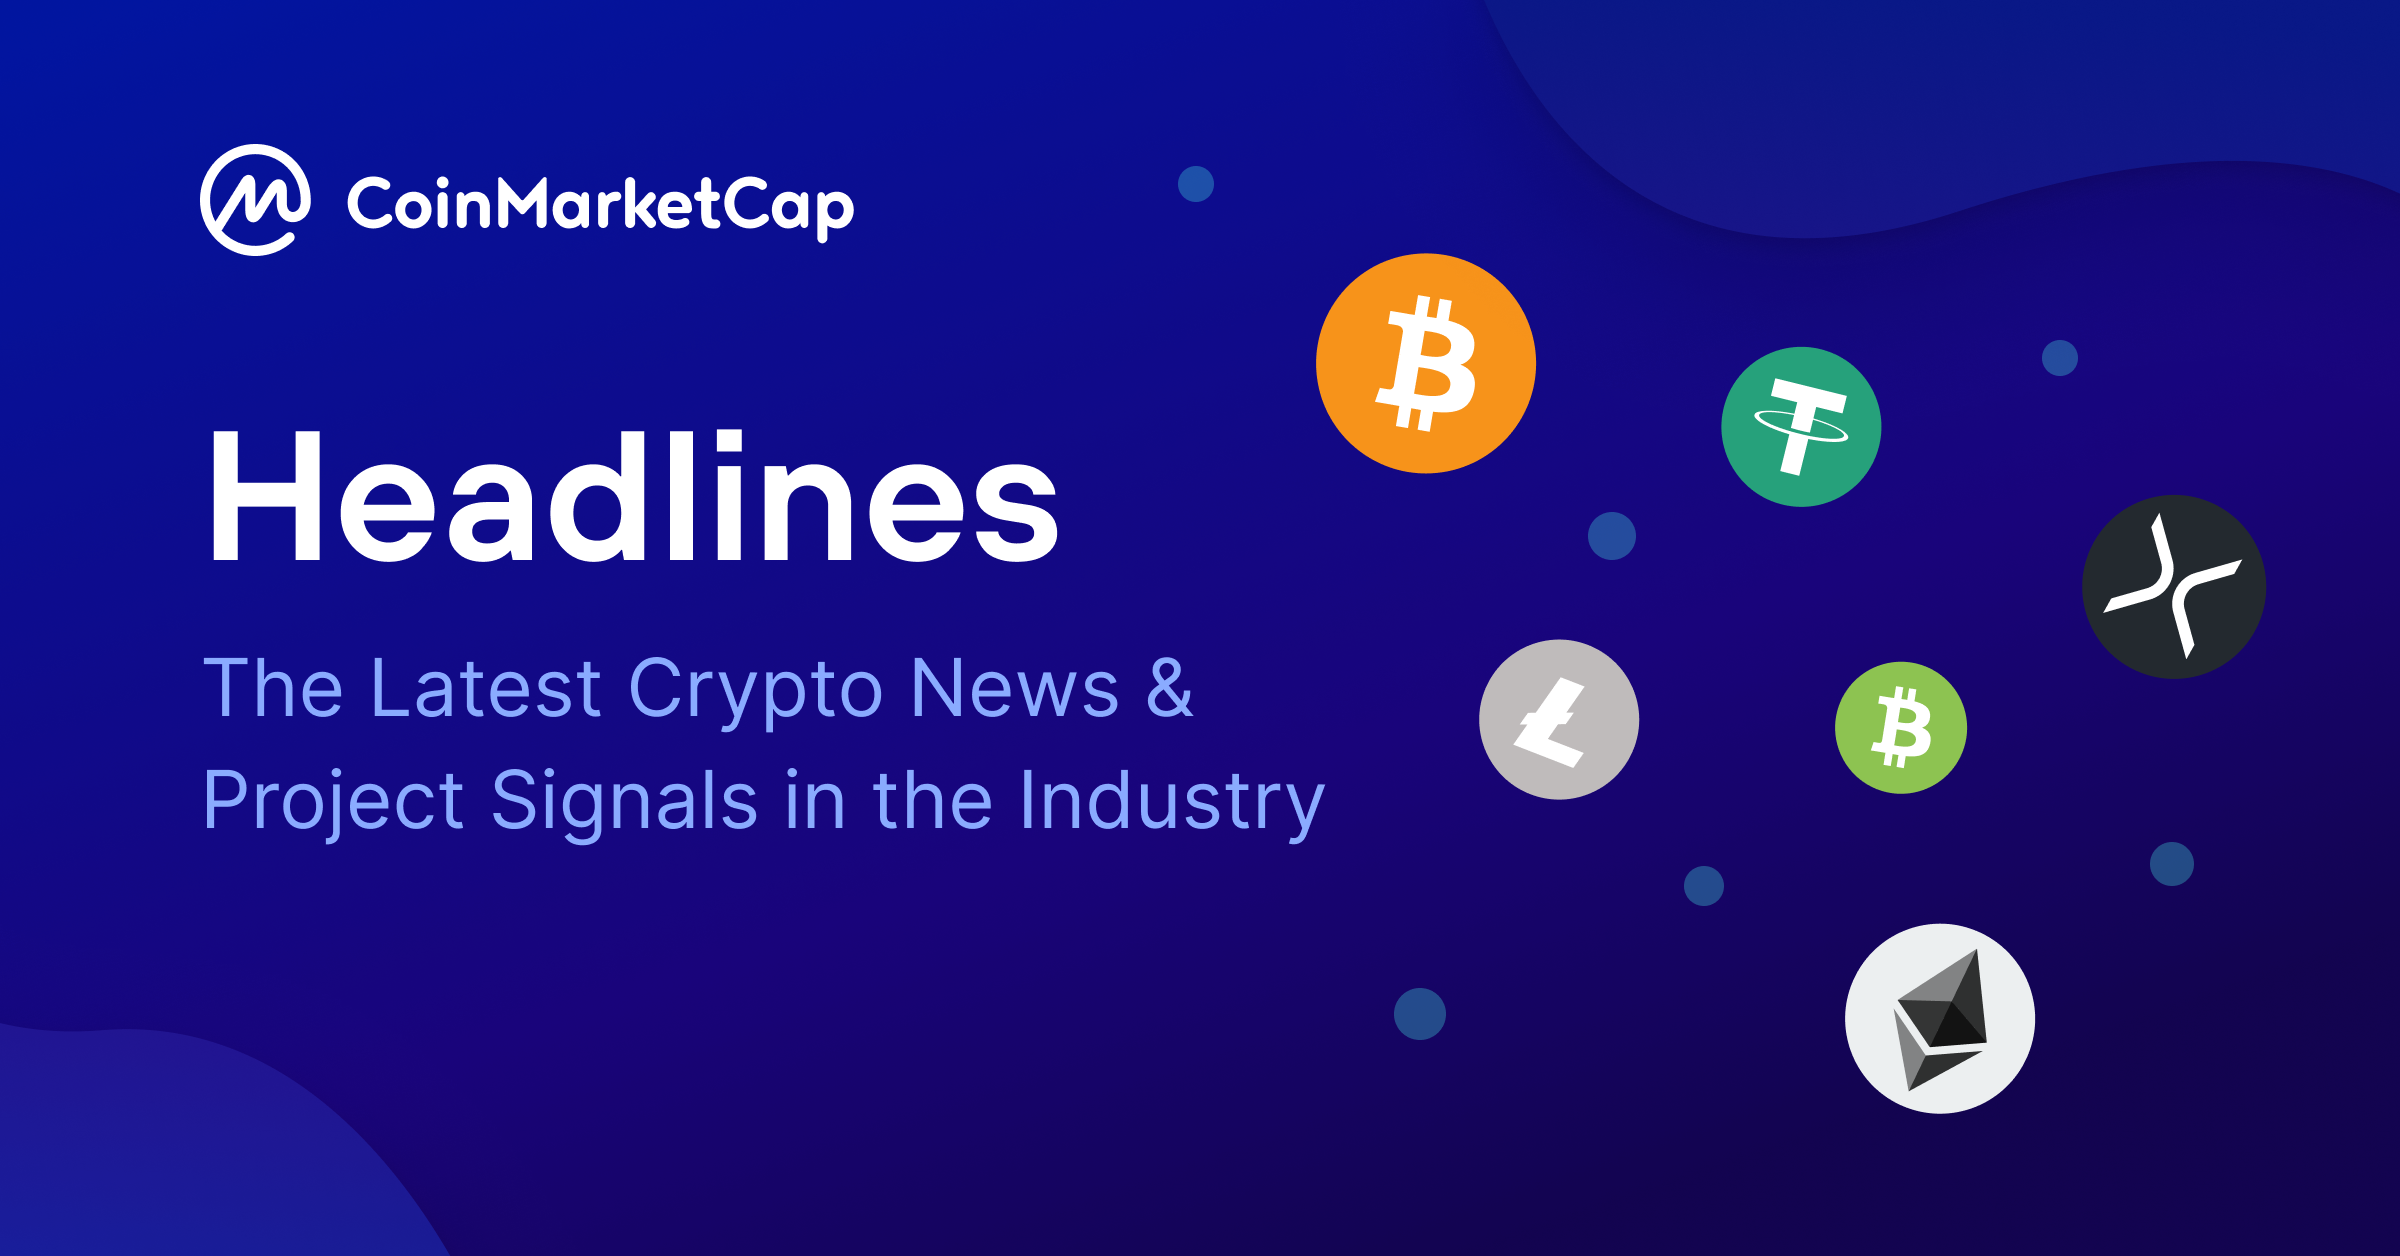 Today In Crypto: MicroStrategy to Buy ~$635 M Worth of Bitcoin | $200 M Tether [USDT] Minted | SBI Acquires Crypto Exchange B2C2 | Headlines | News